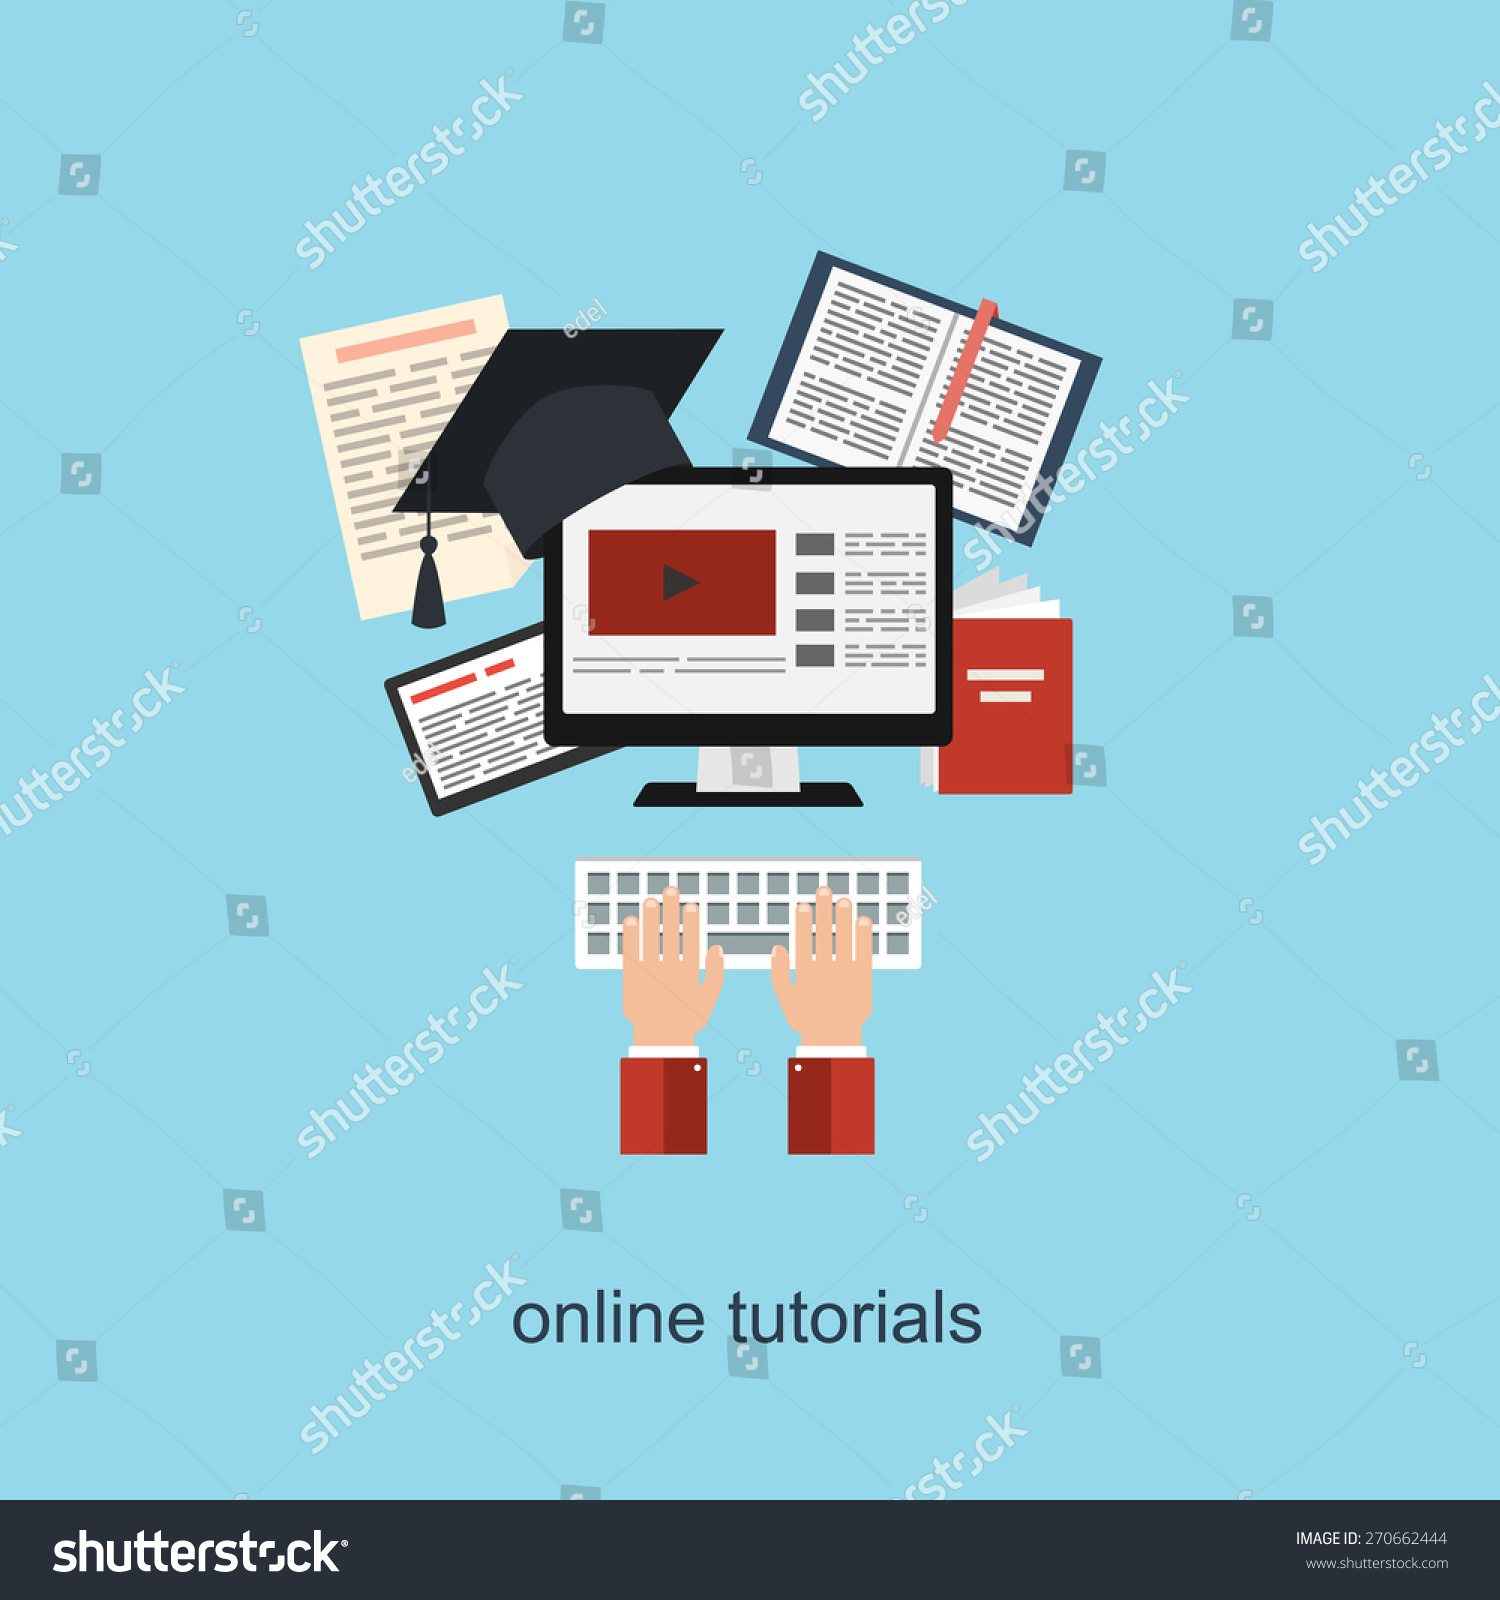 Online Tutorial Concept Vector Illustration Flat Stock Vector ...